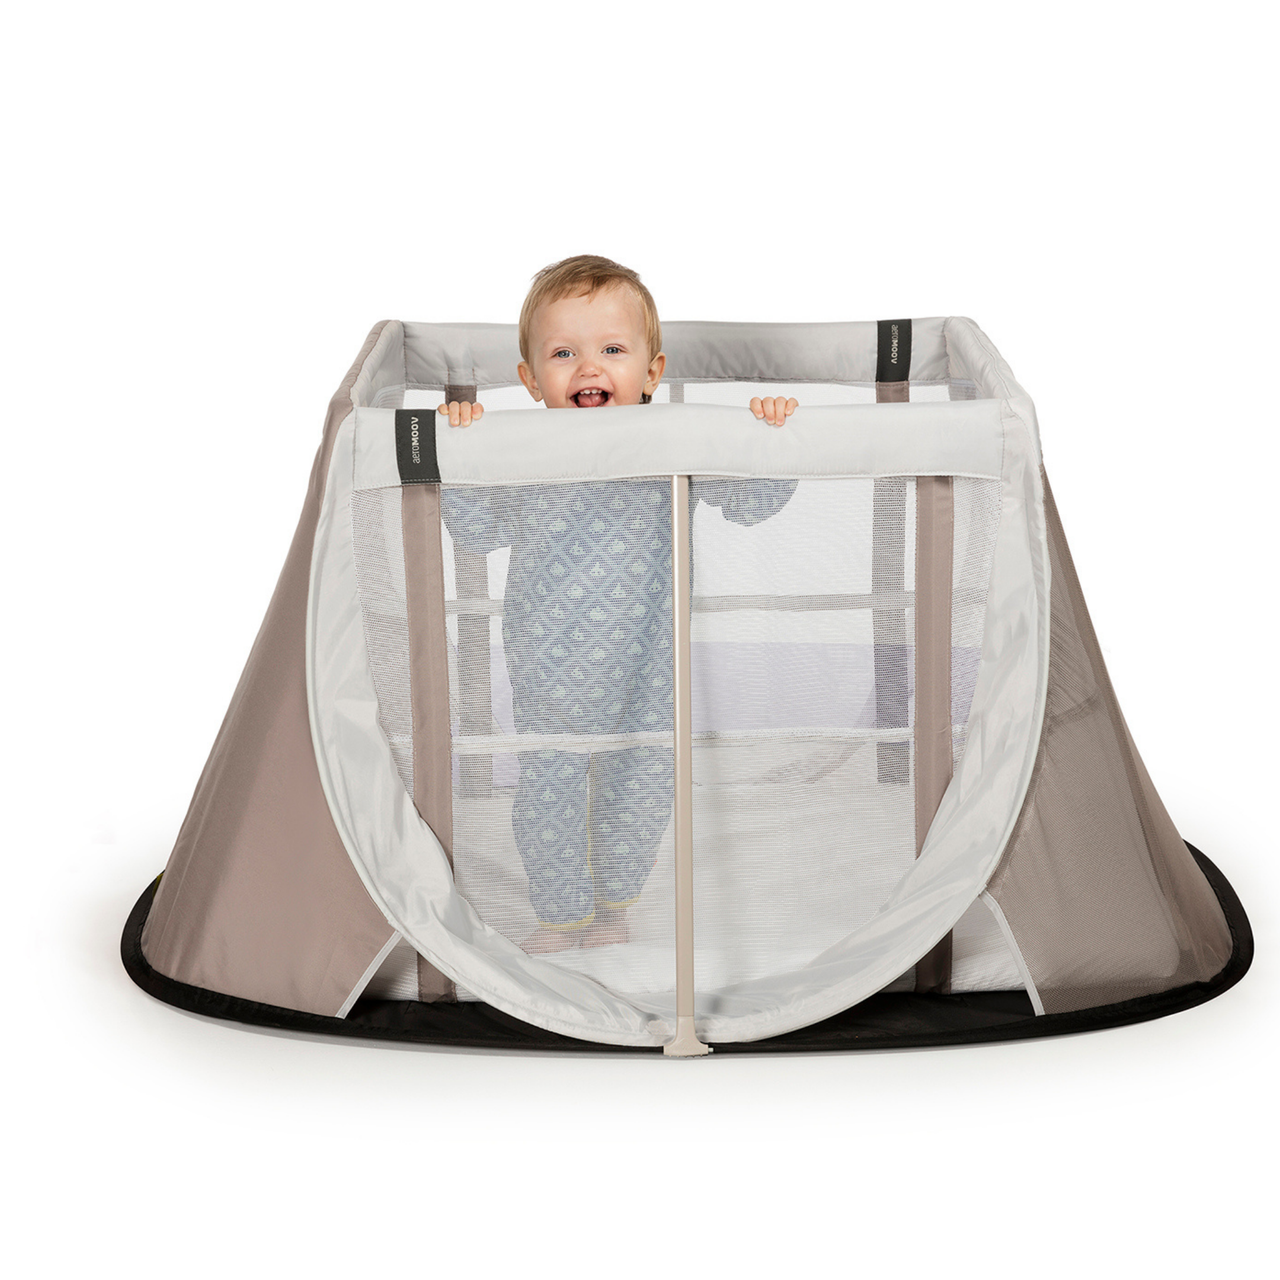 Aeromoov Instant Travel Cot WHITE SAND at Baby Barn Discounts You can set up and pack up the AeroMoov instant travel cot in seconds!